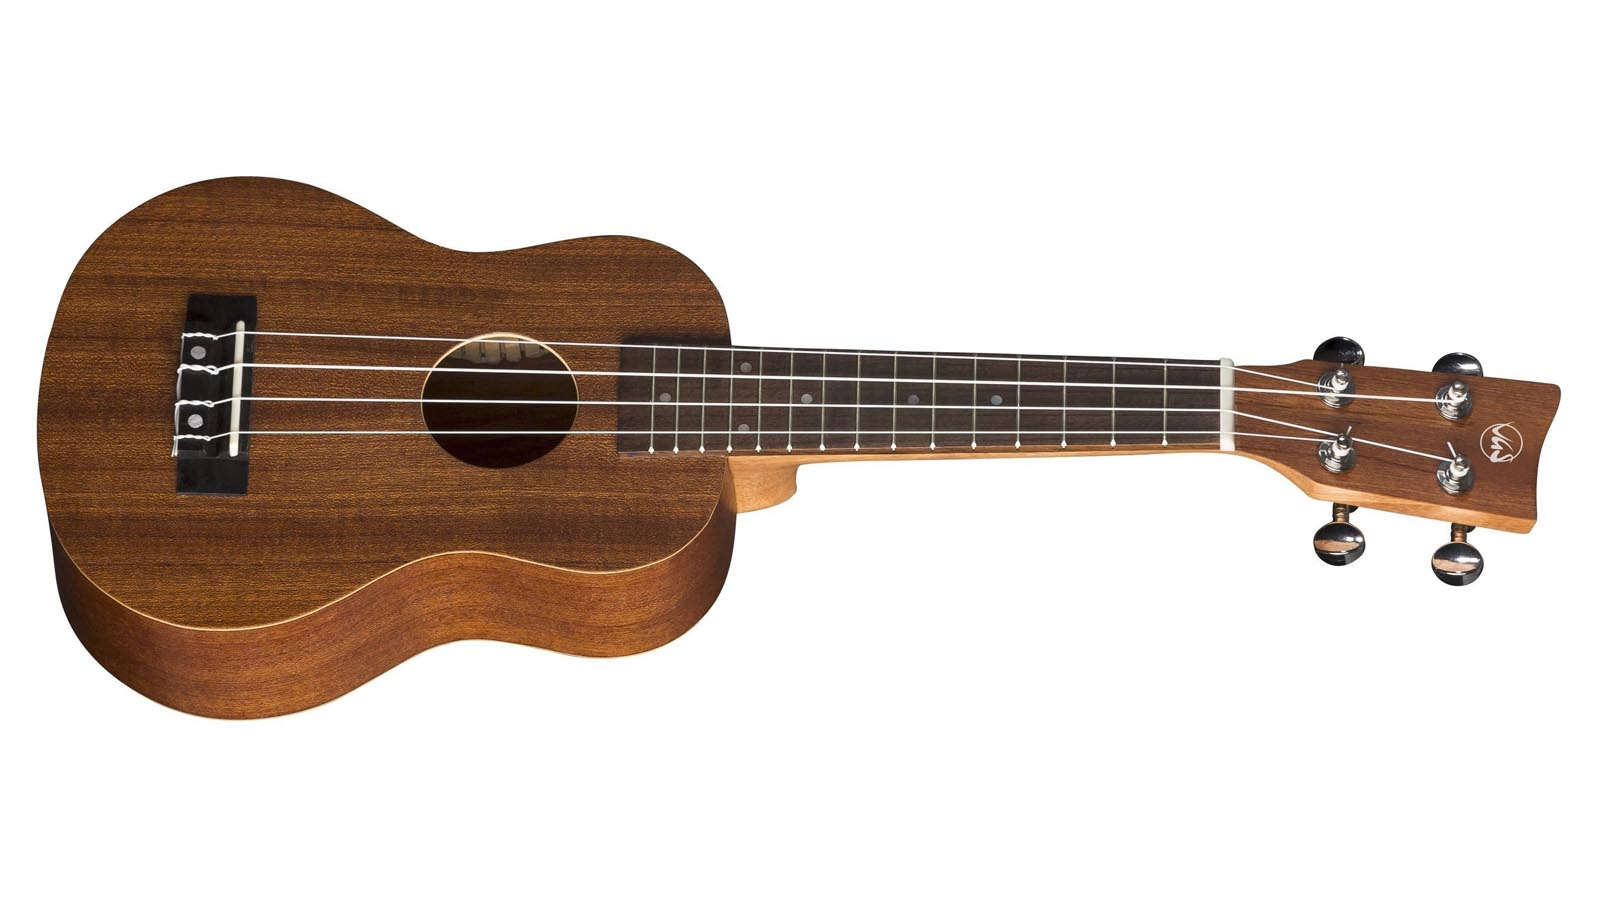 VGS Manoa P-SO Sopran Ukulele